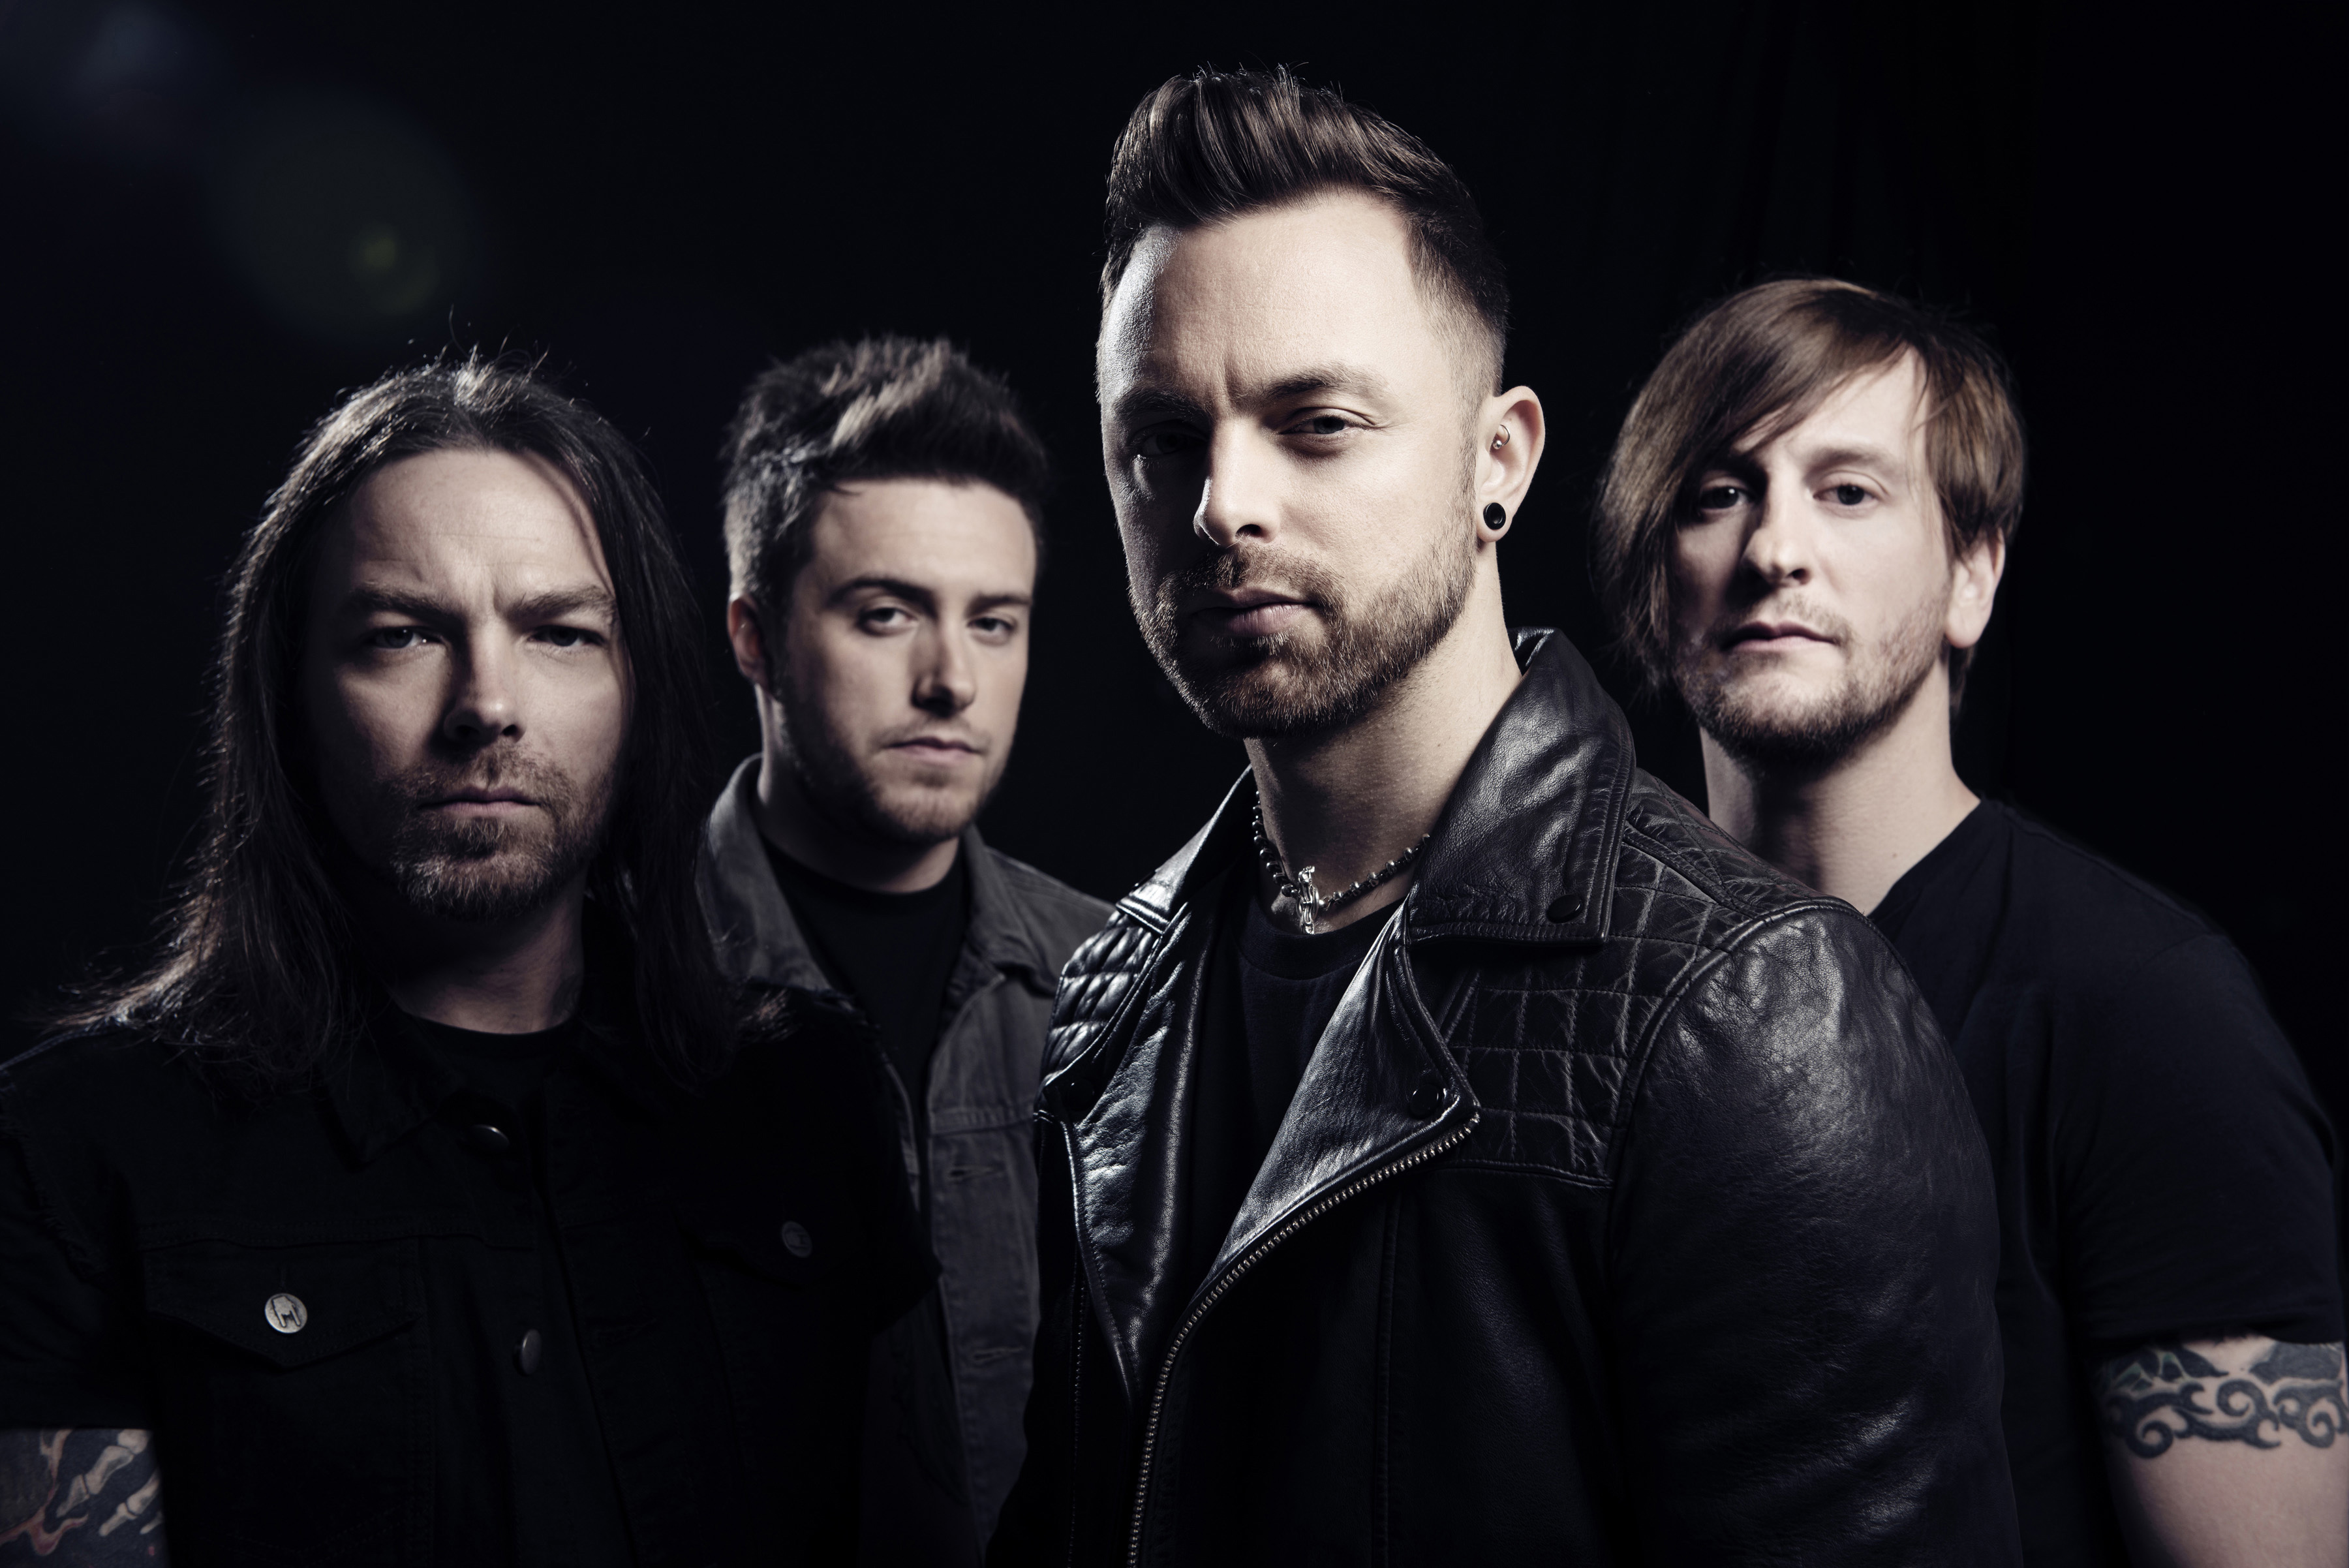 BULLET FOR MY VALENTINE RELEASES NEW VIDEO FOR U201cWORTHLESSu201d